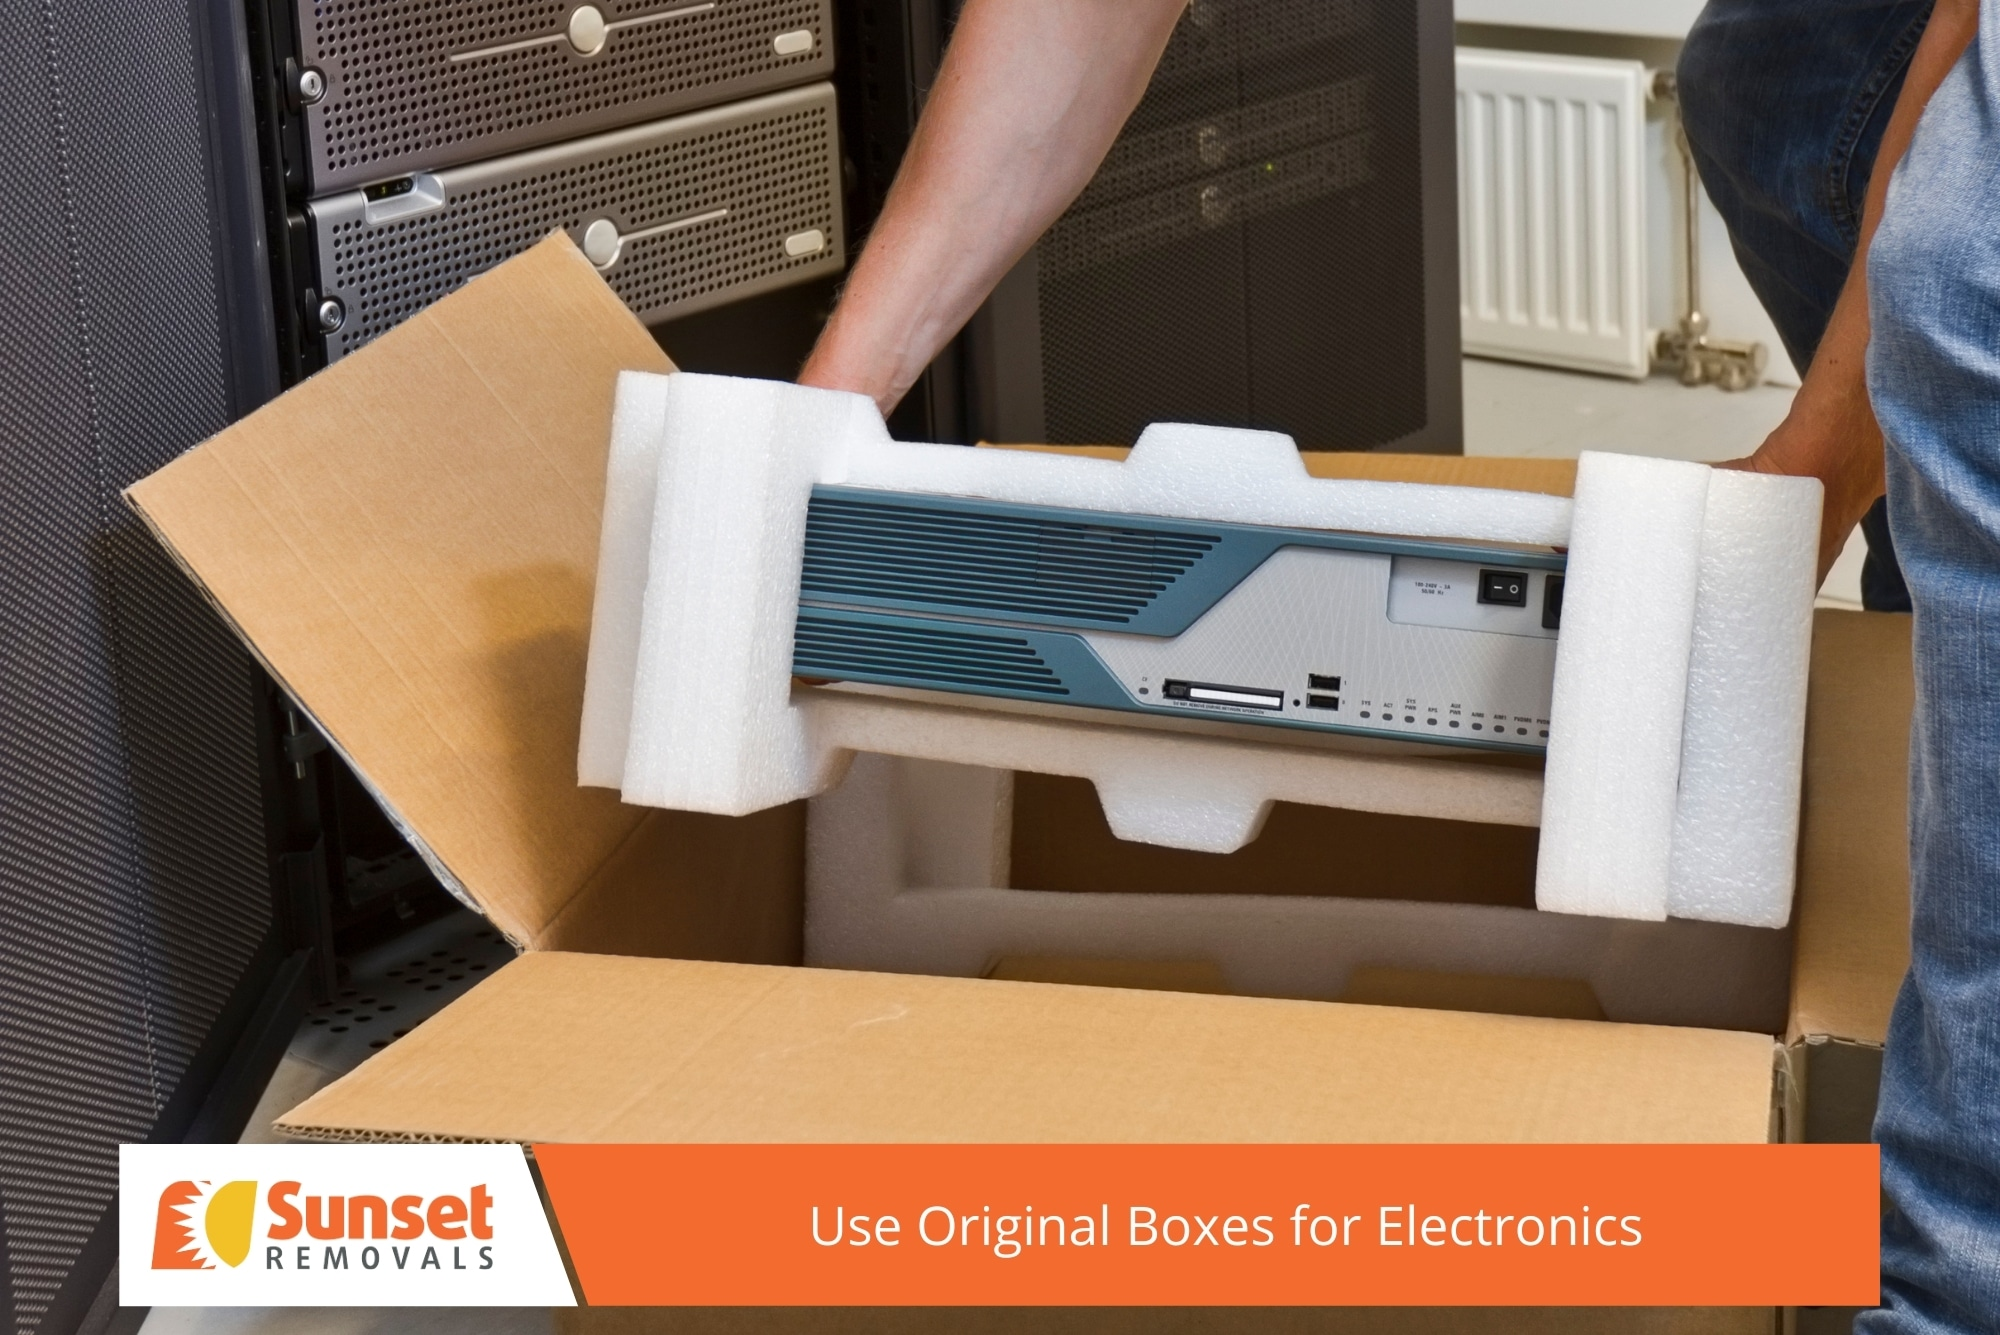 Use Original Boxes for Electronics